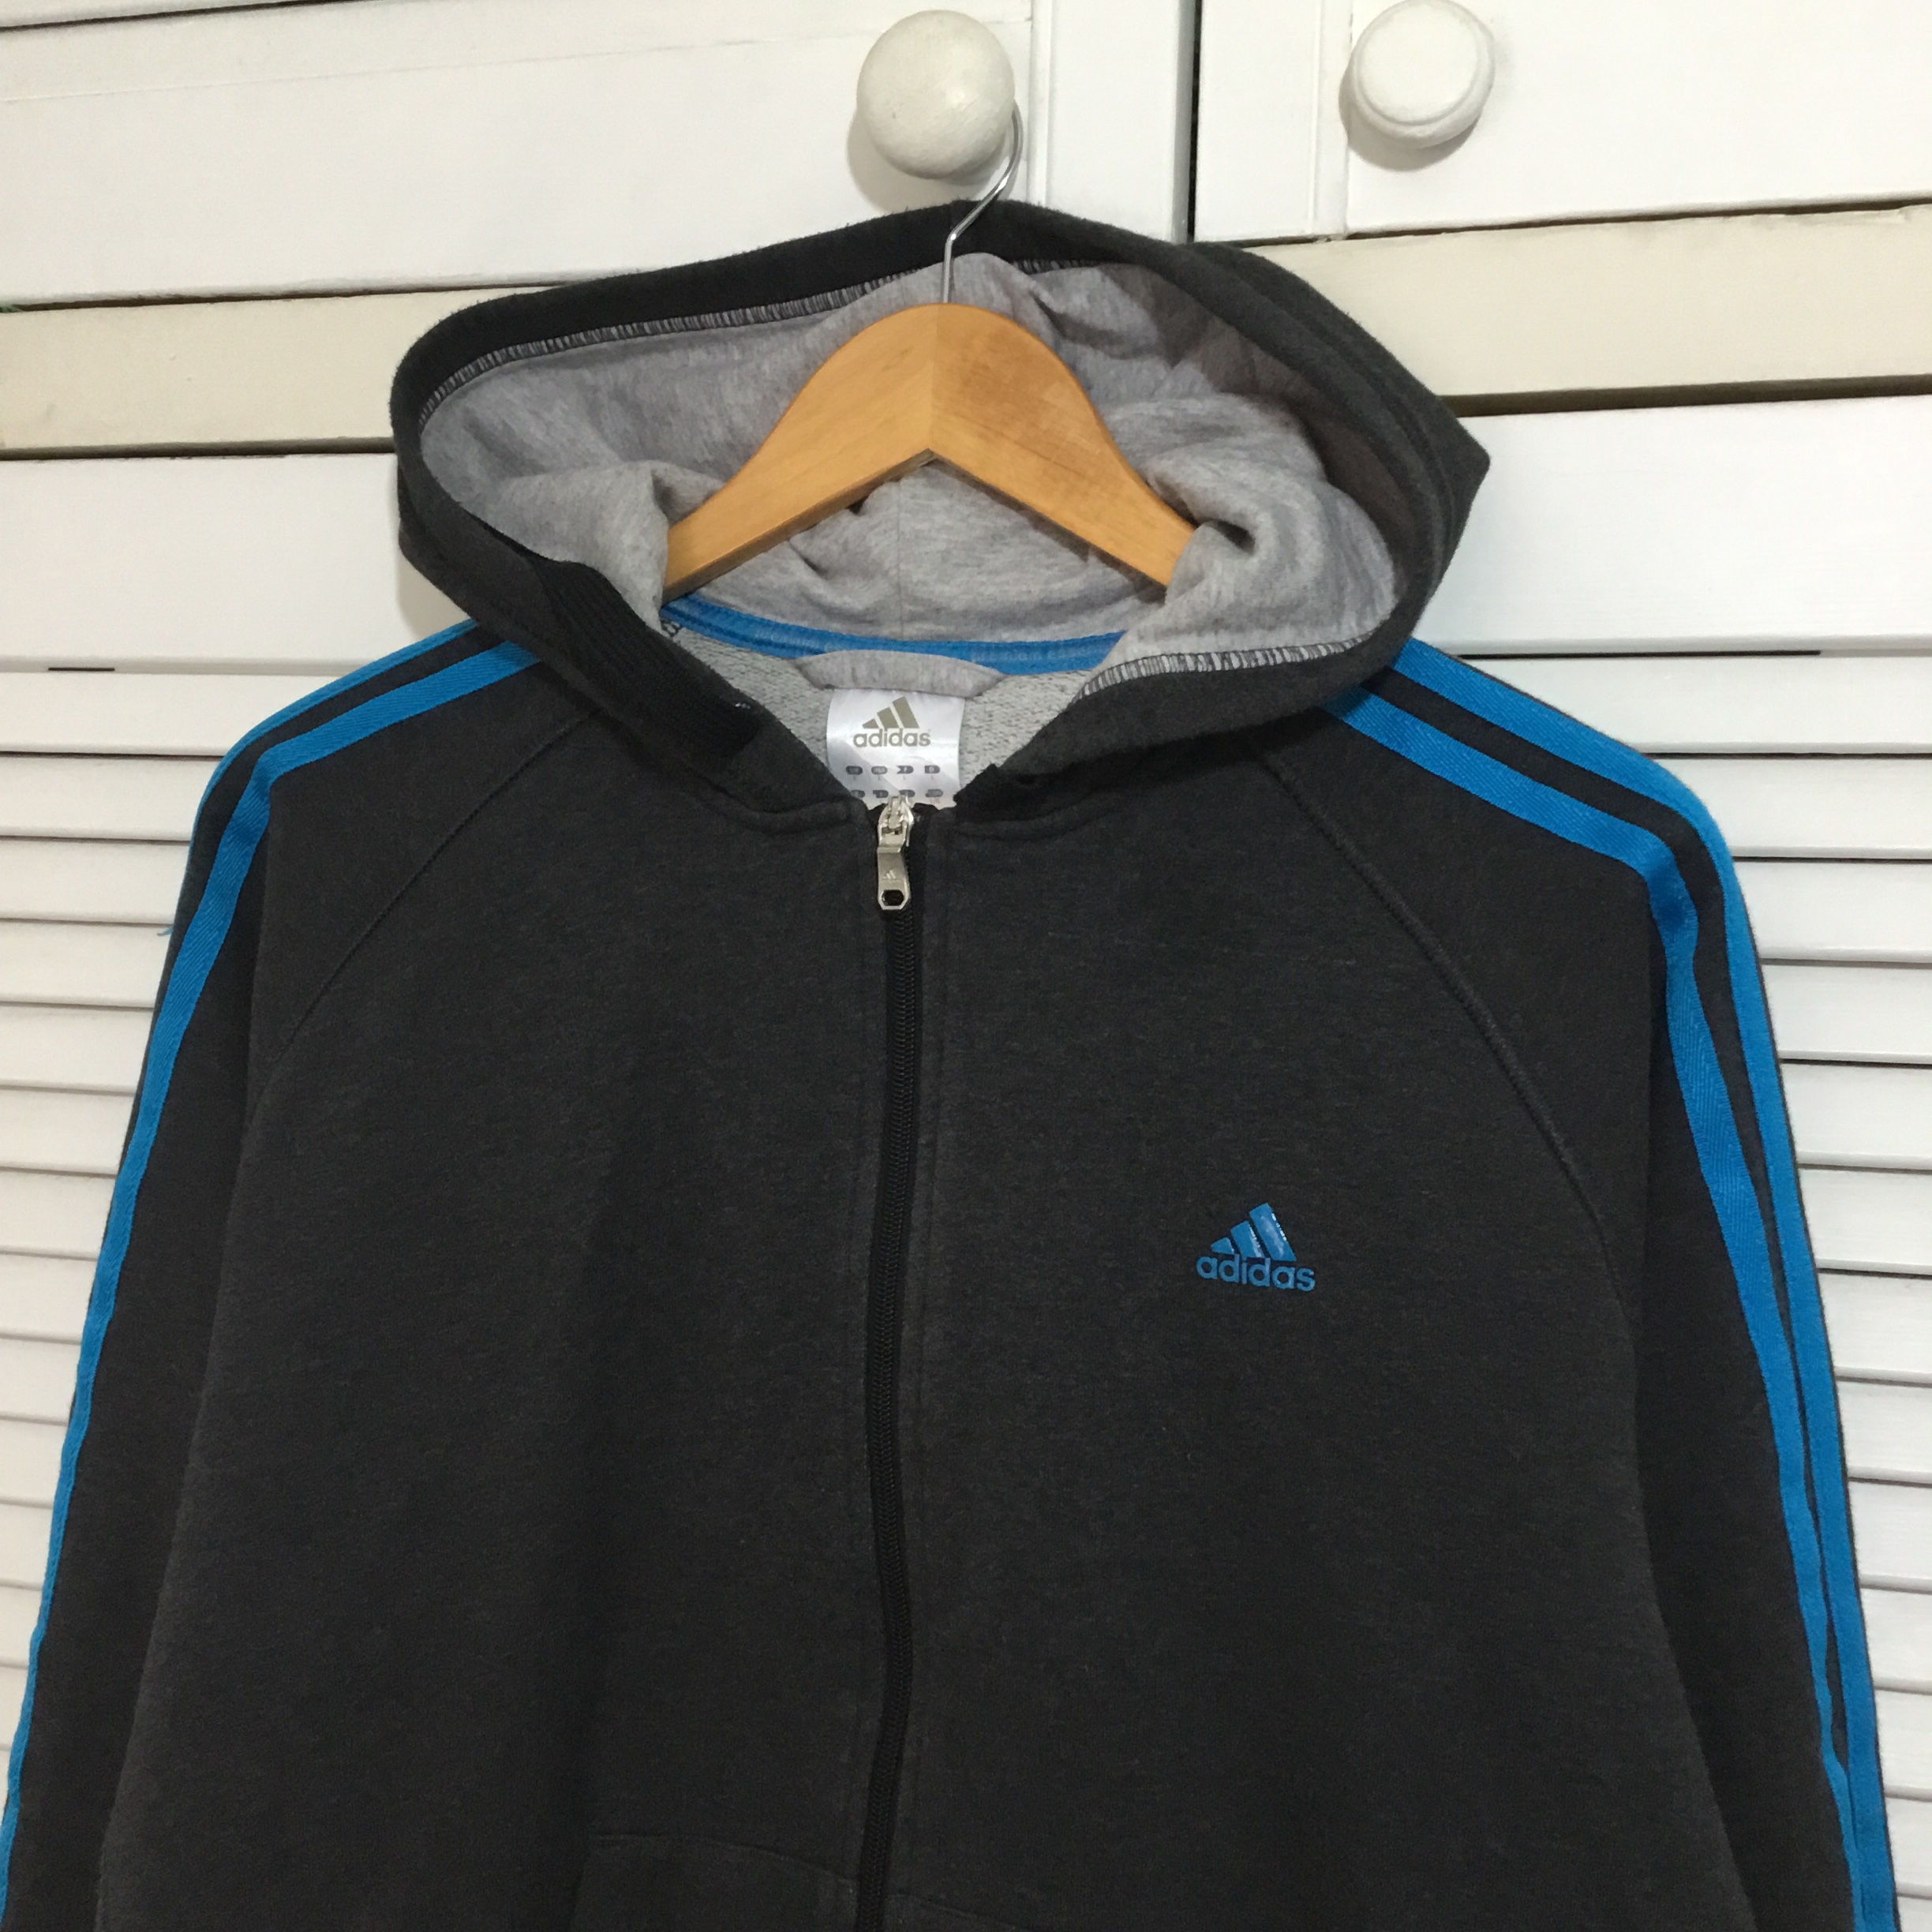 Men's Adidas Zip up hoody PREMIUM ESSENTIALS Depop